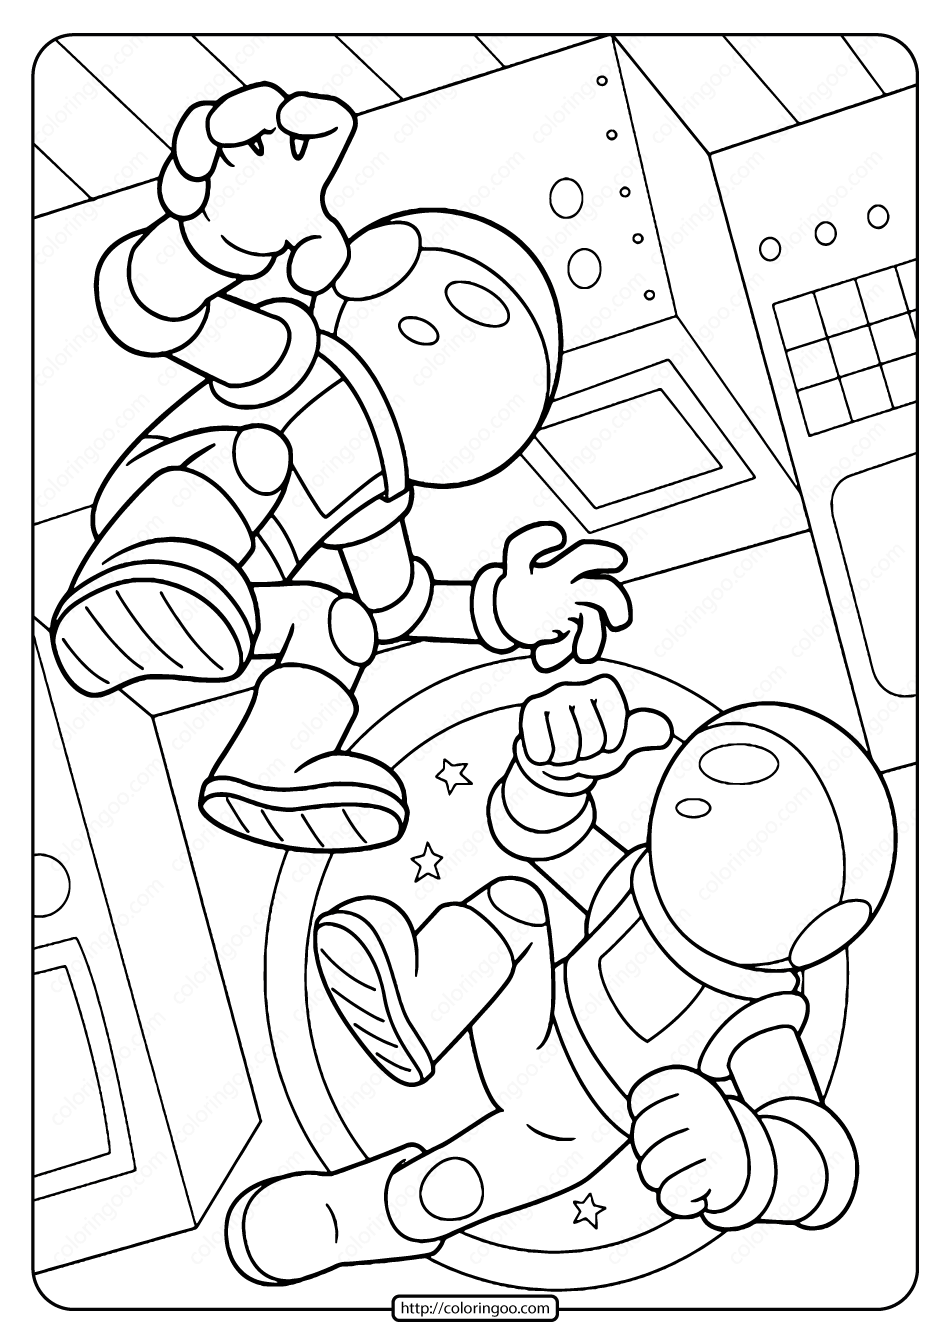 astronaut body coloring page free printable space astronauts pdf coloring page astronaut body coloring page